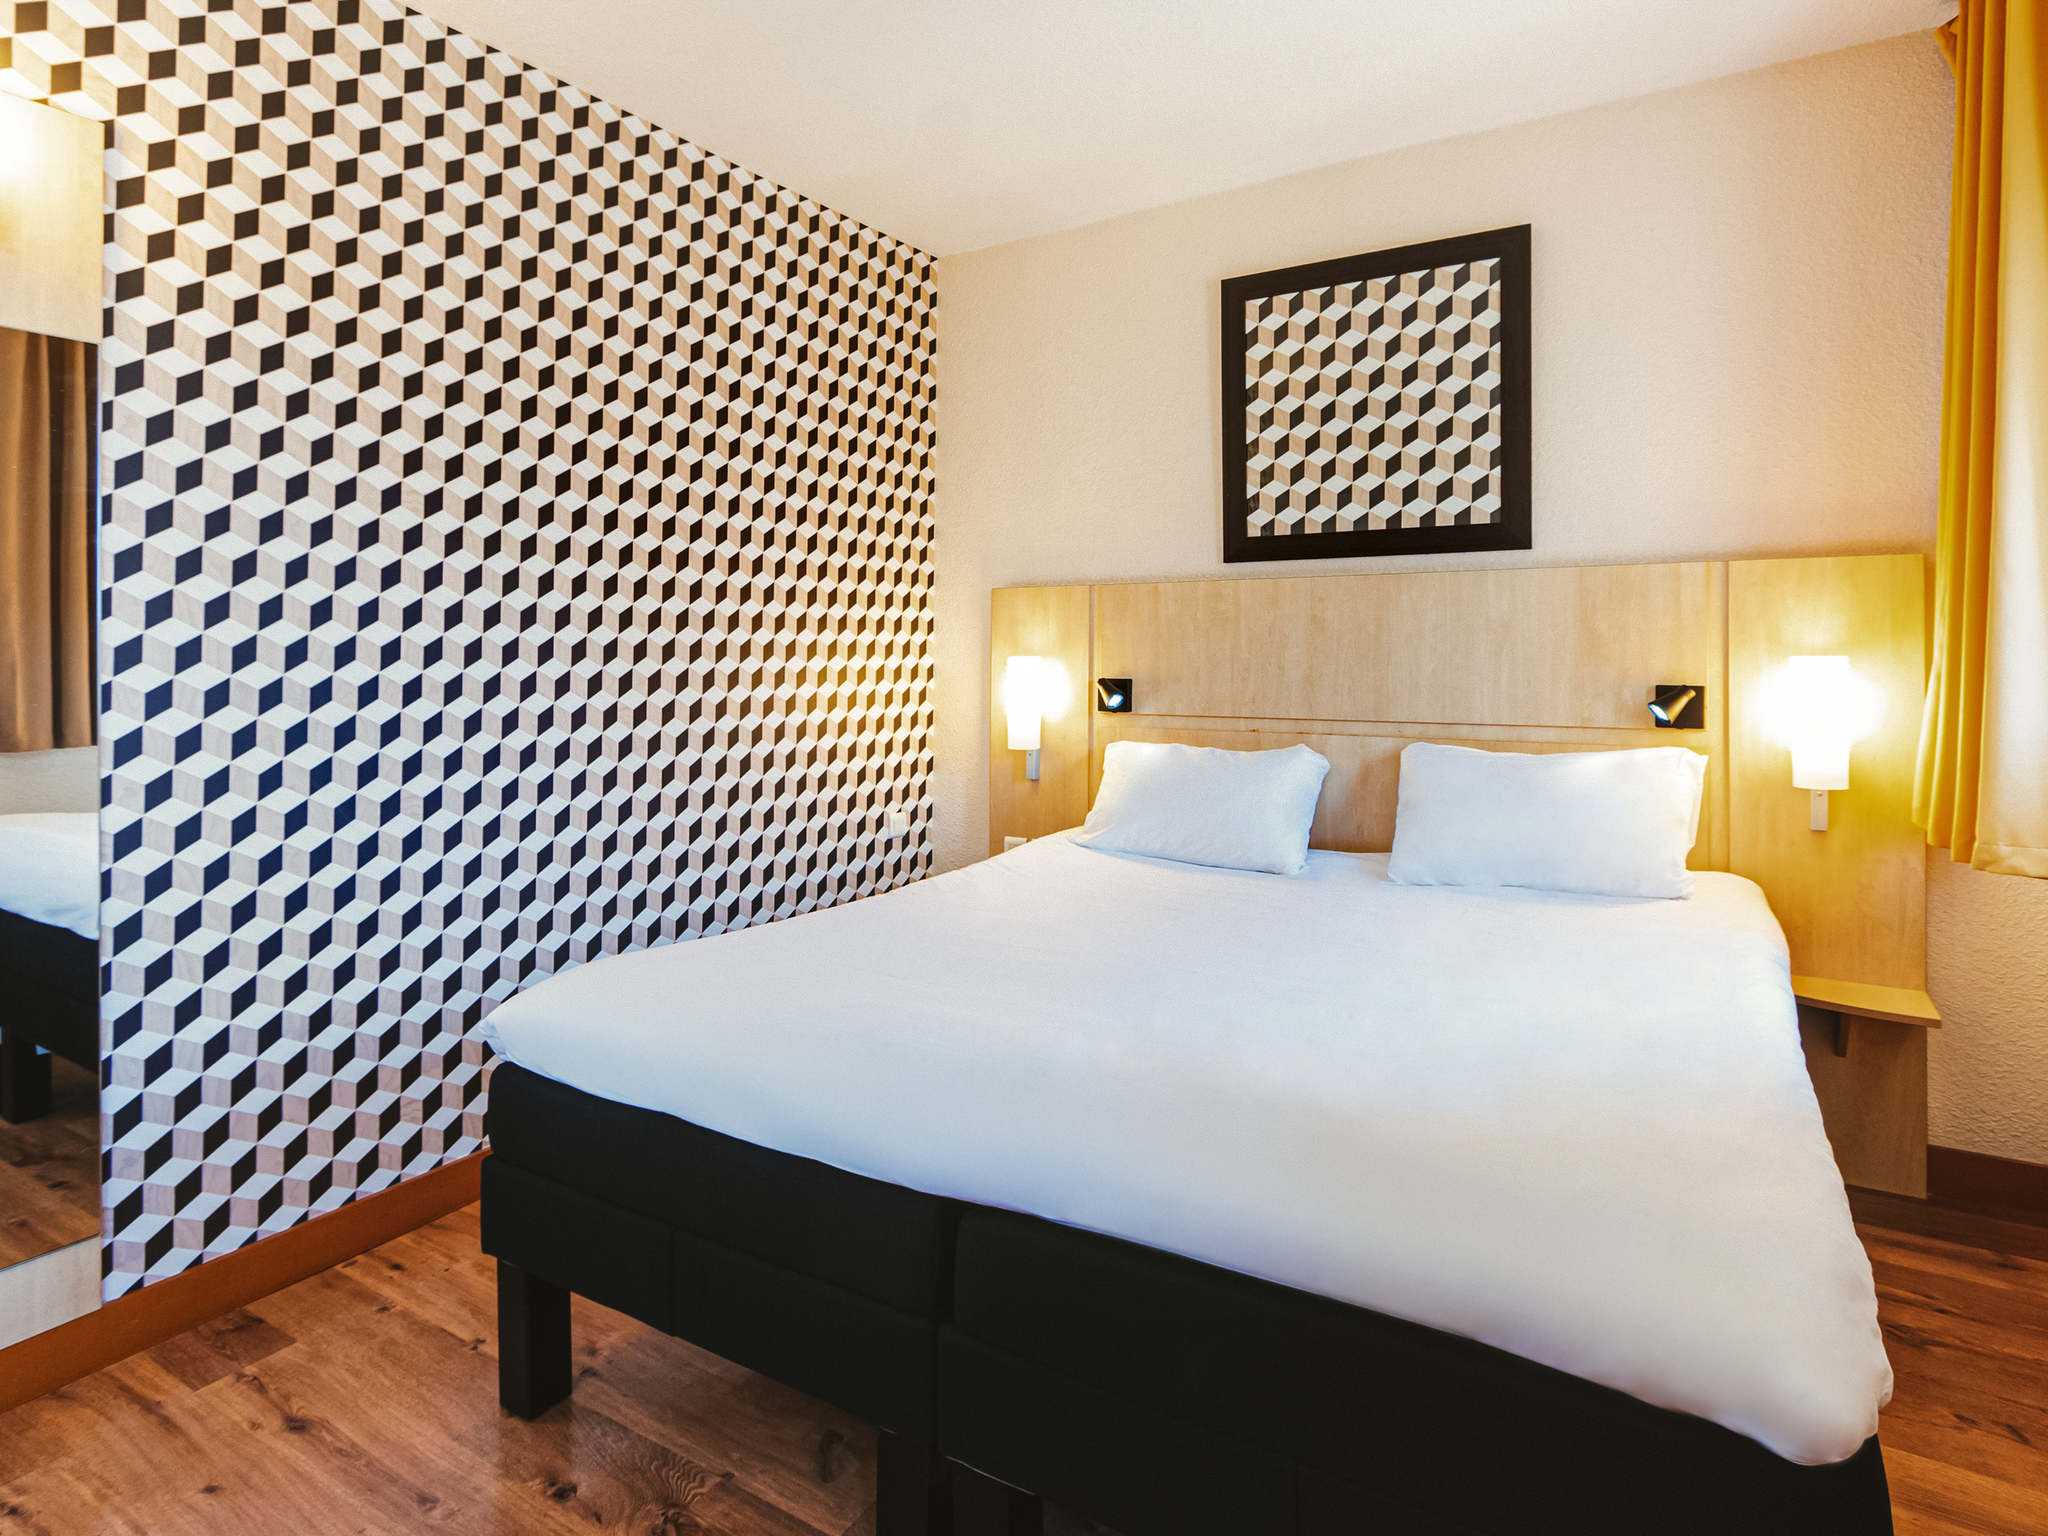 hotel in chateauroux ibis chateauroux. Black Bedroom Furniture Sets. Home Design Ideas